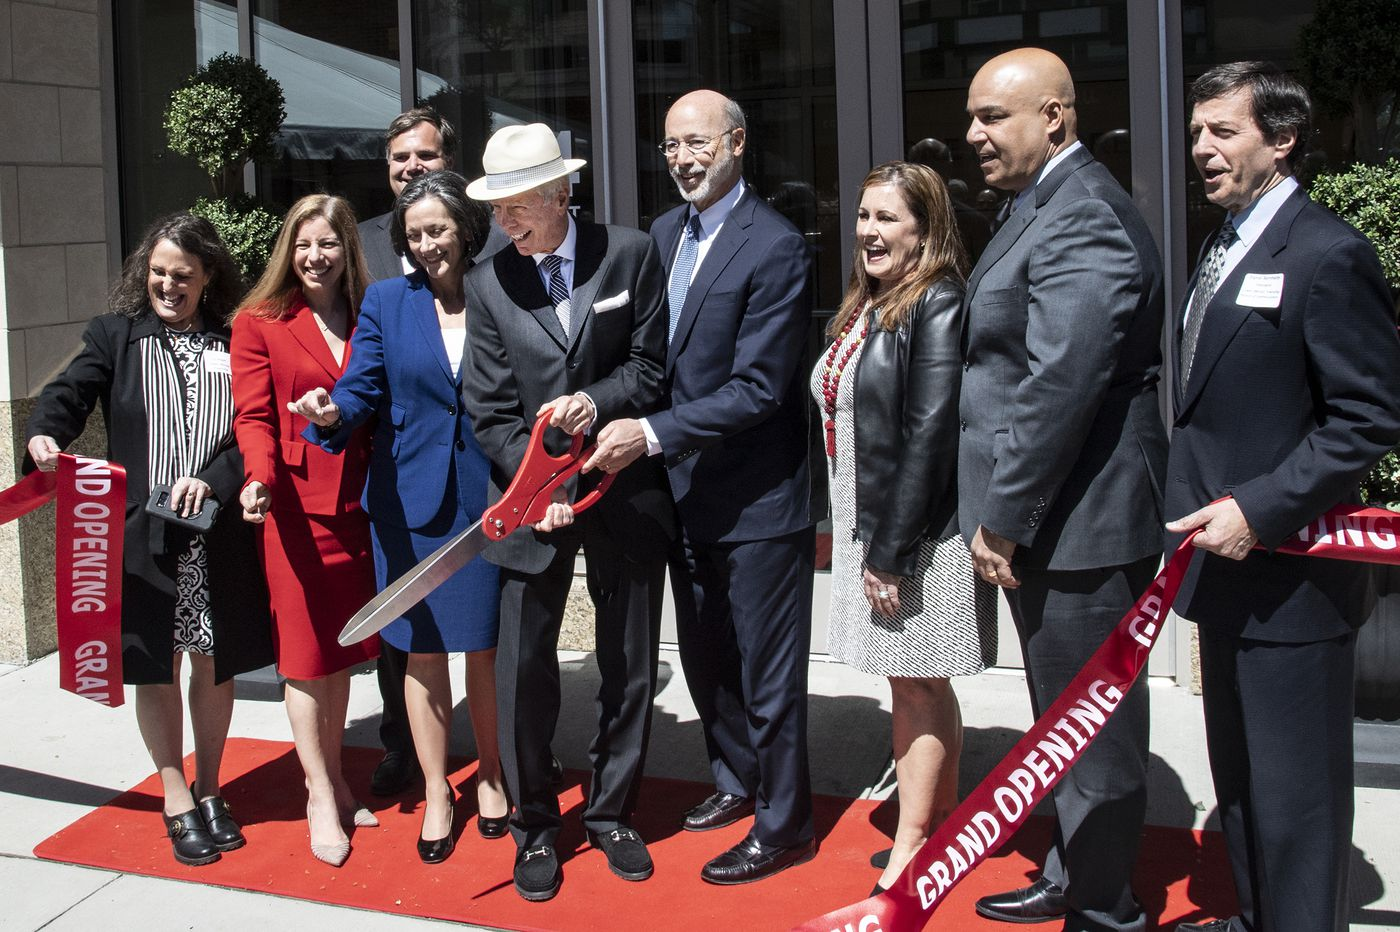 After 11 years of 'delays and setbacks,' developer Carl Dranoff unveils apartment building in Ardmore